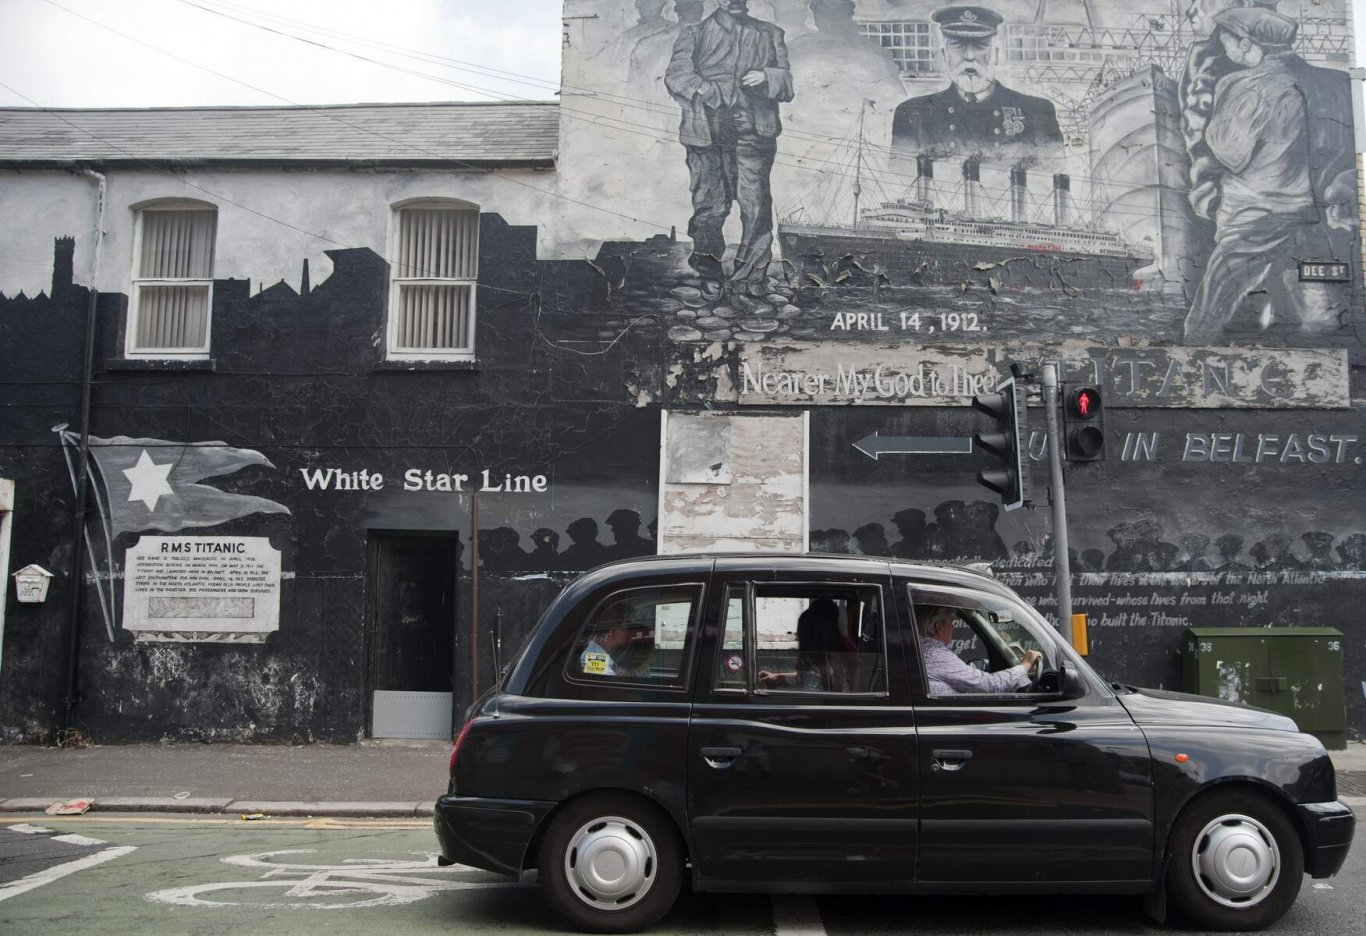 Belfast black taxi tour travelling by a wall mural